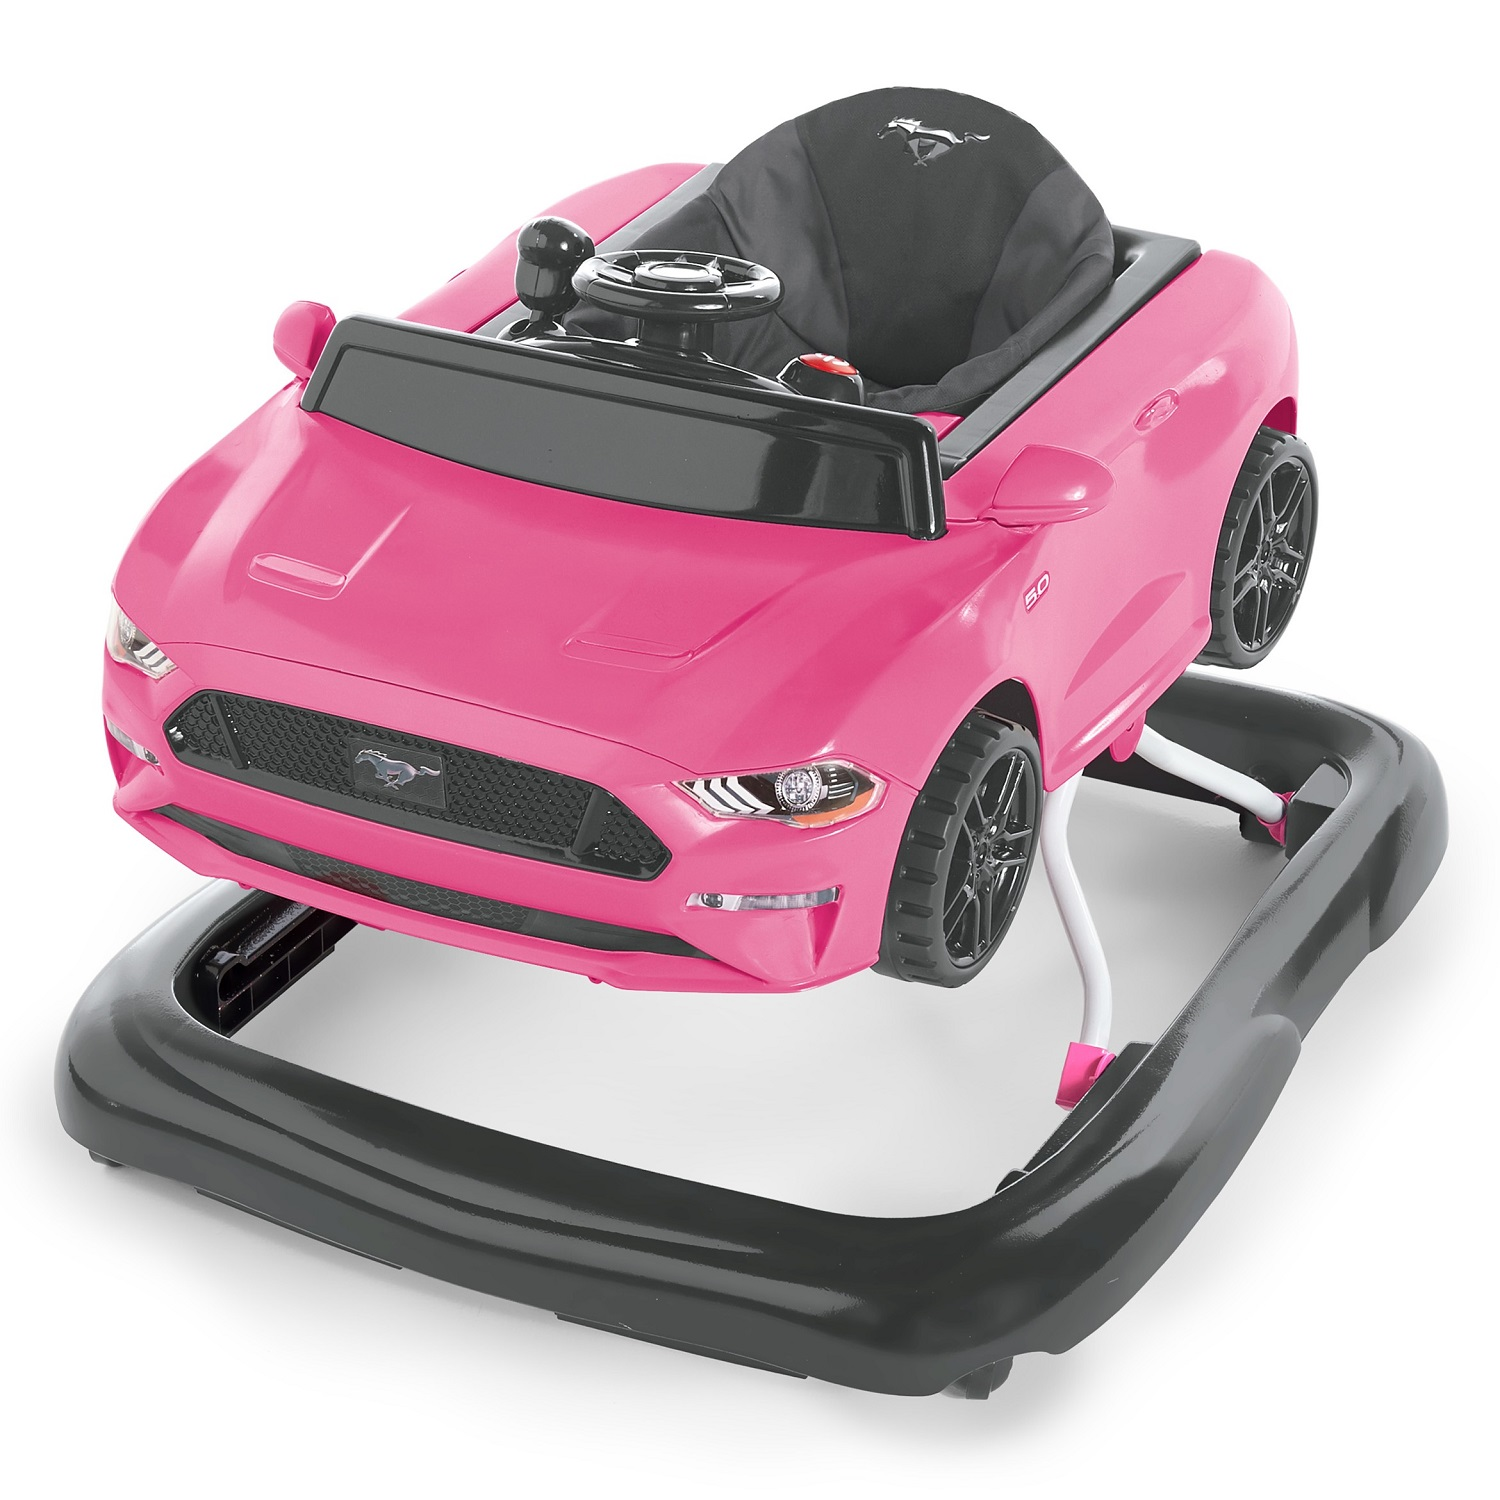 BRIGHT STARTS Chodítko 3v1 Ford Mustang Pink 6 m do 11 kg